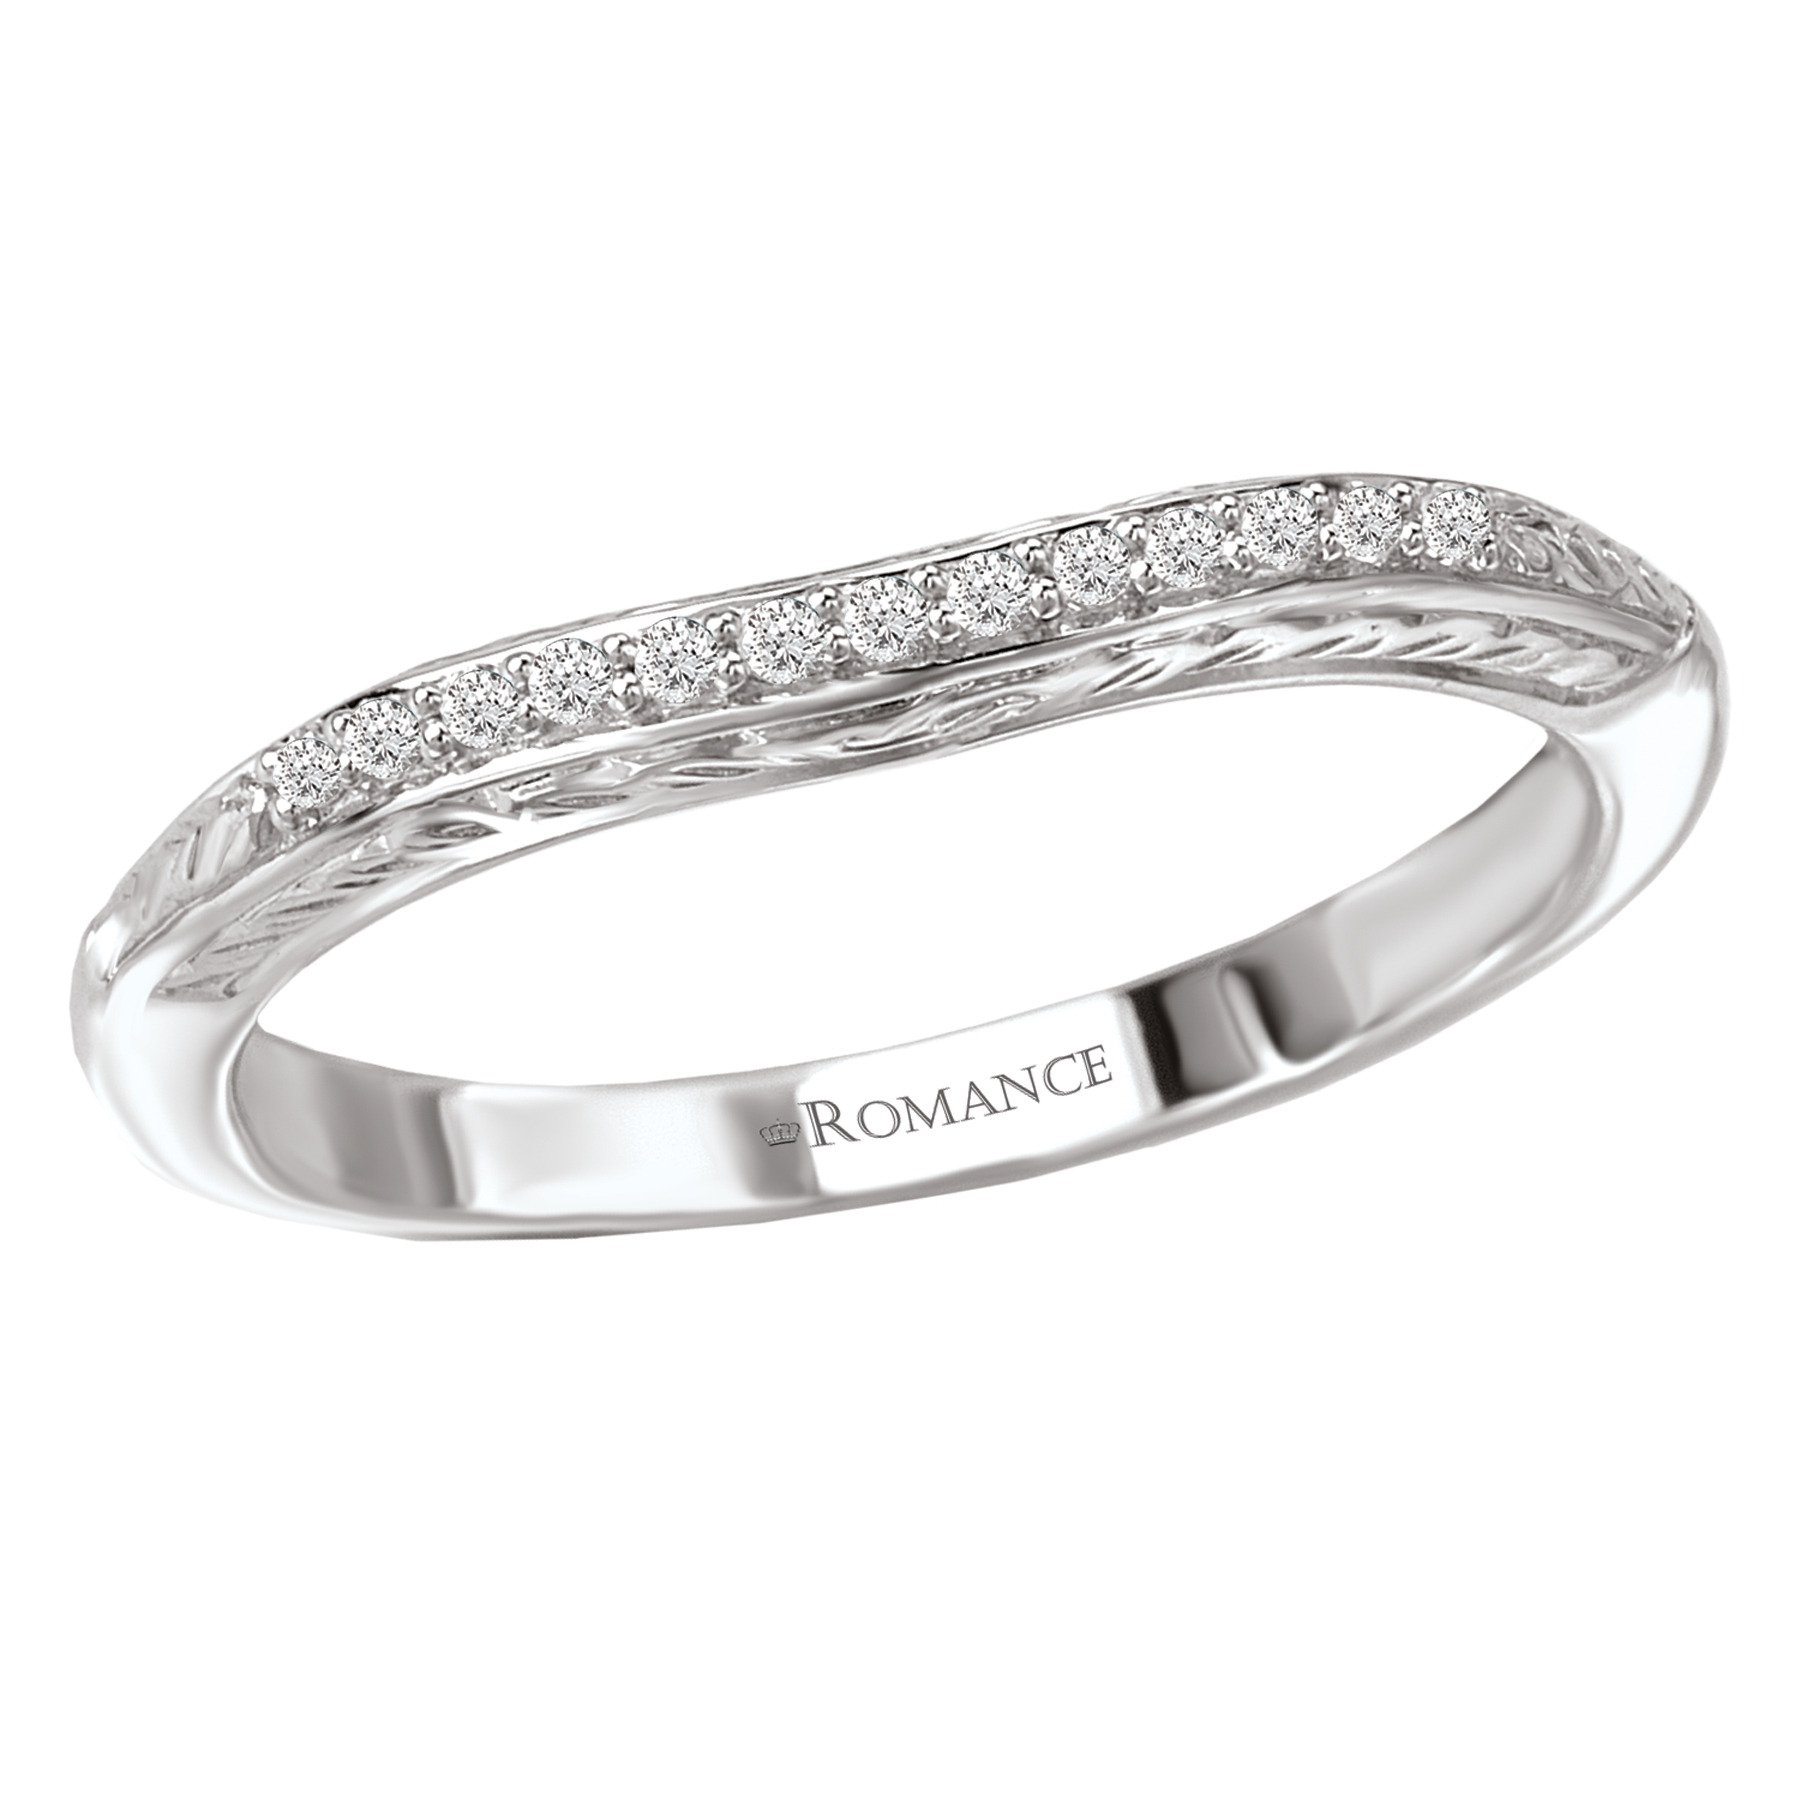 Romance Wedding Bands 117603-100W product image